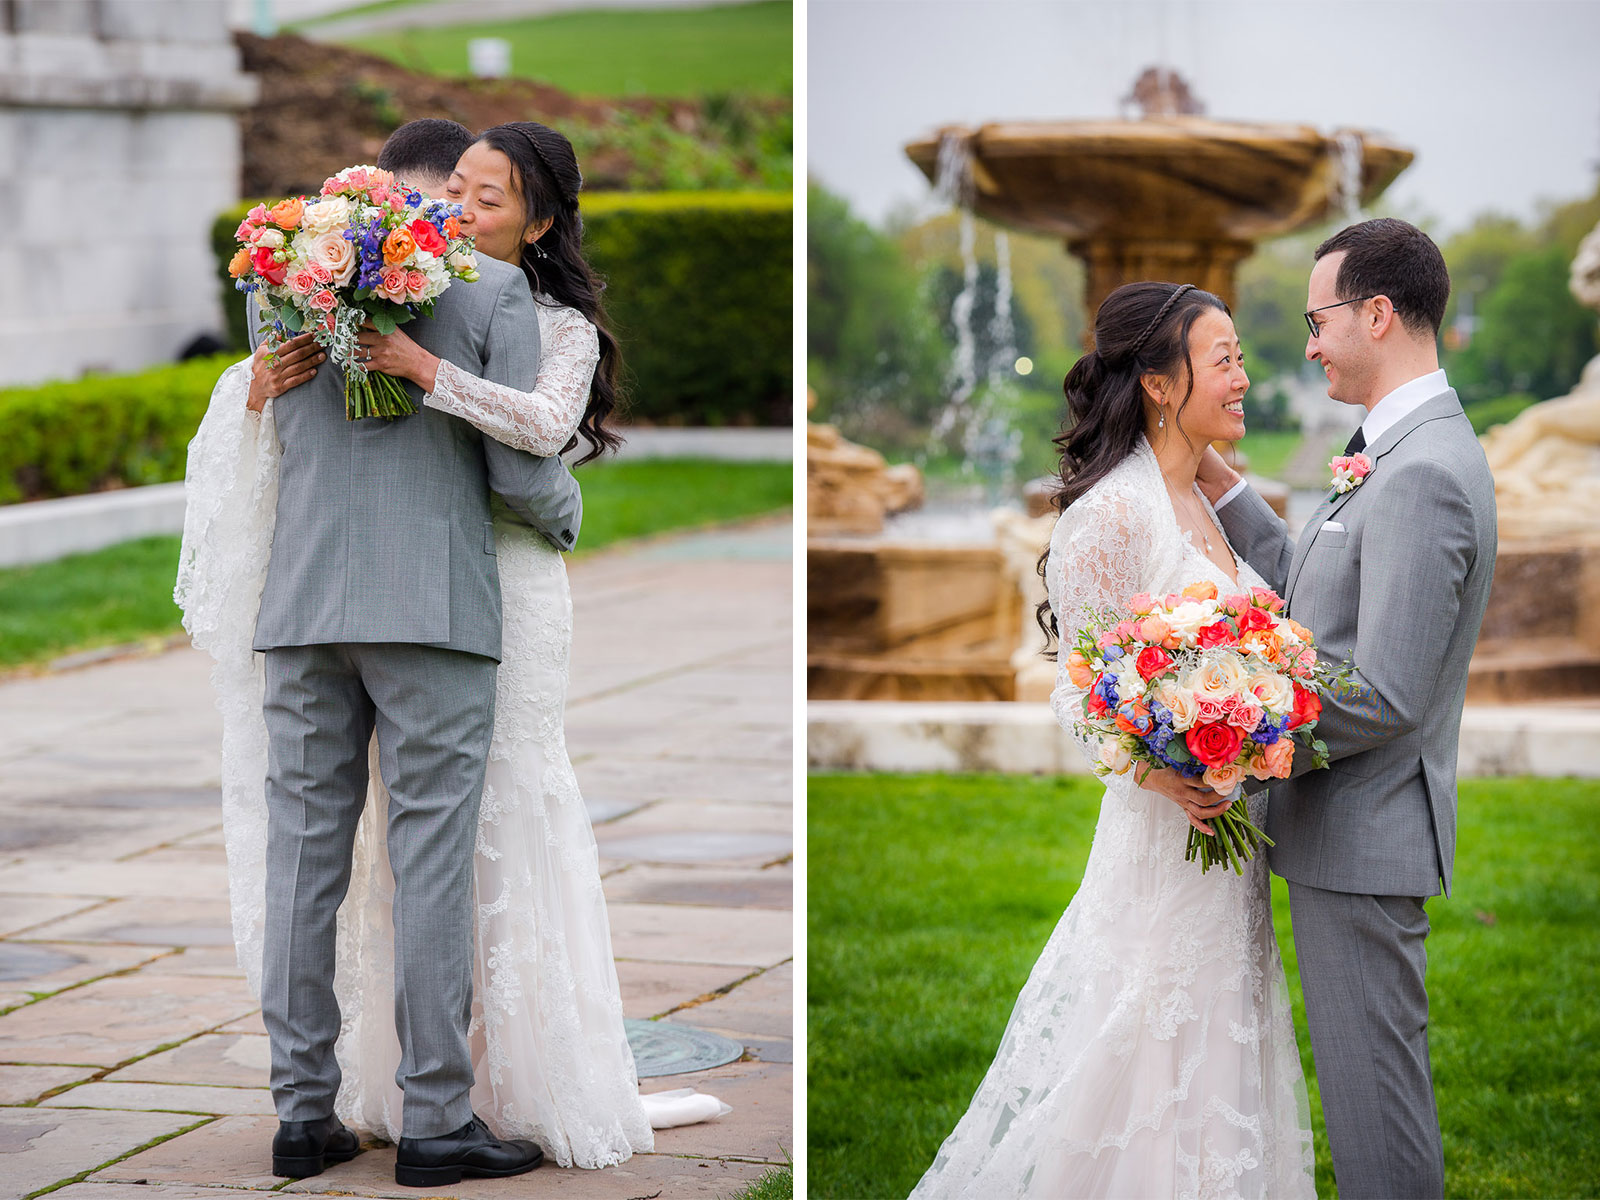 Eric_and_Christy_Photography_Blog_Wedding_Anne_Michael-9-10